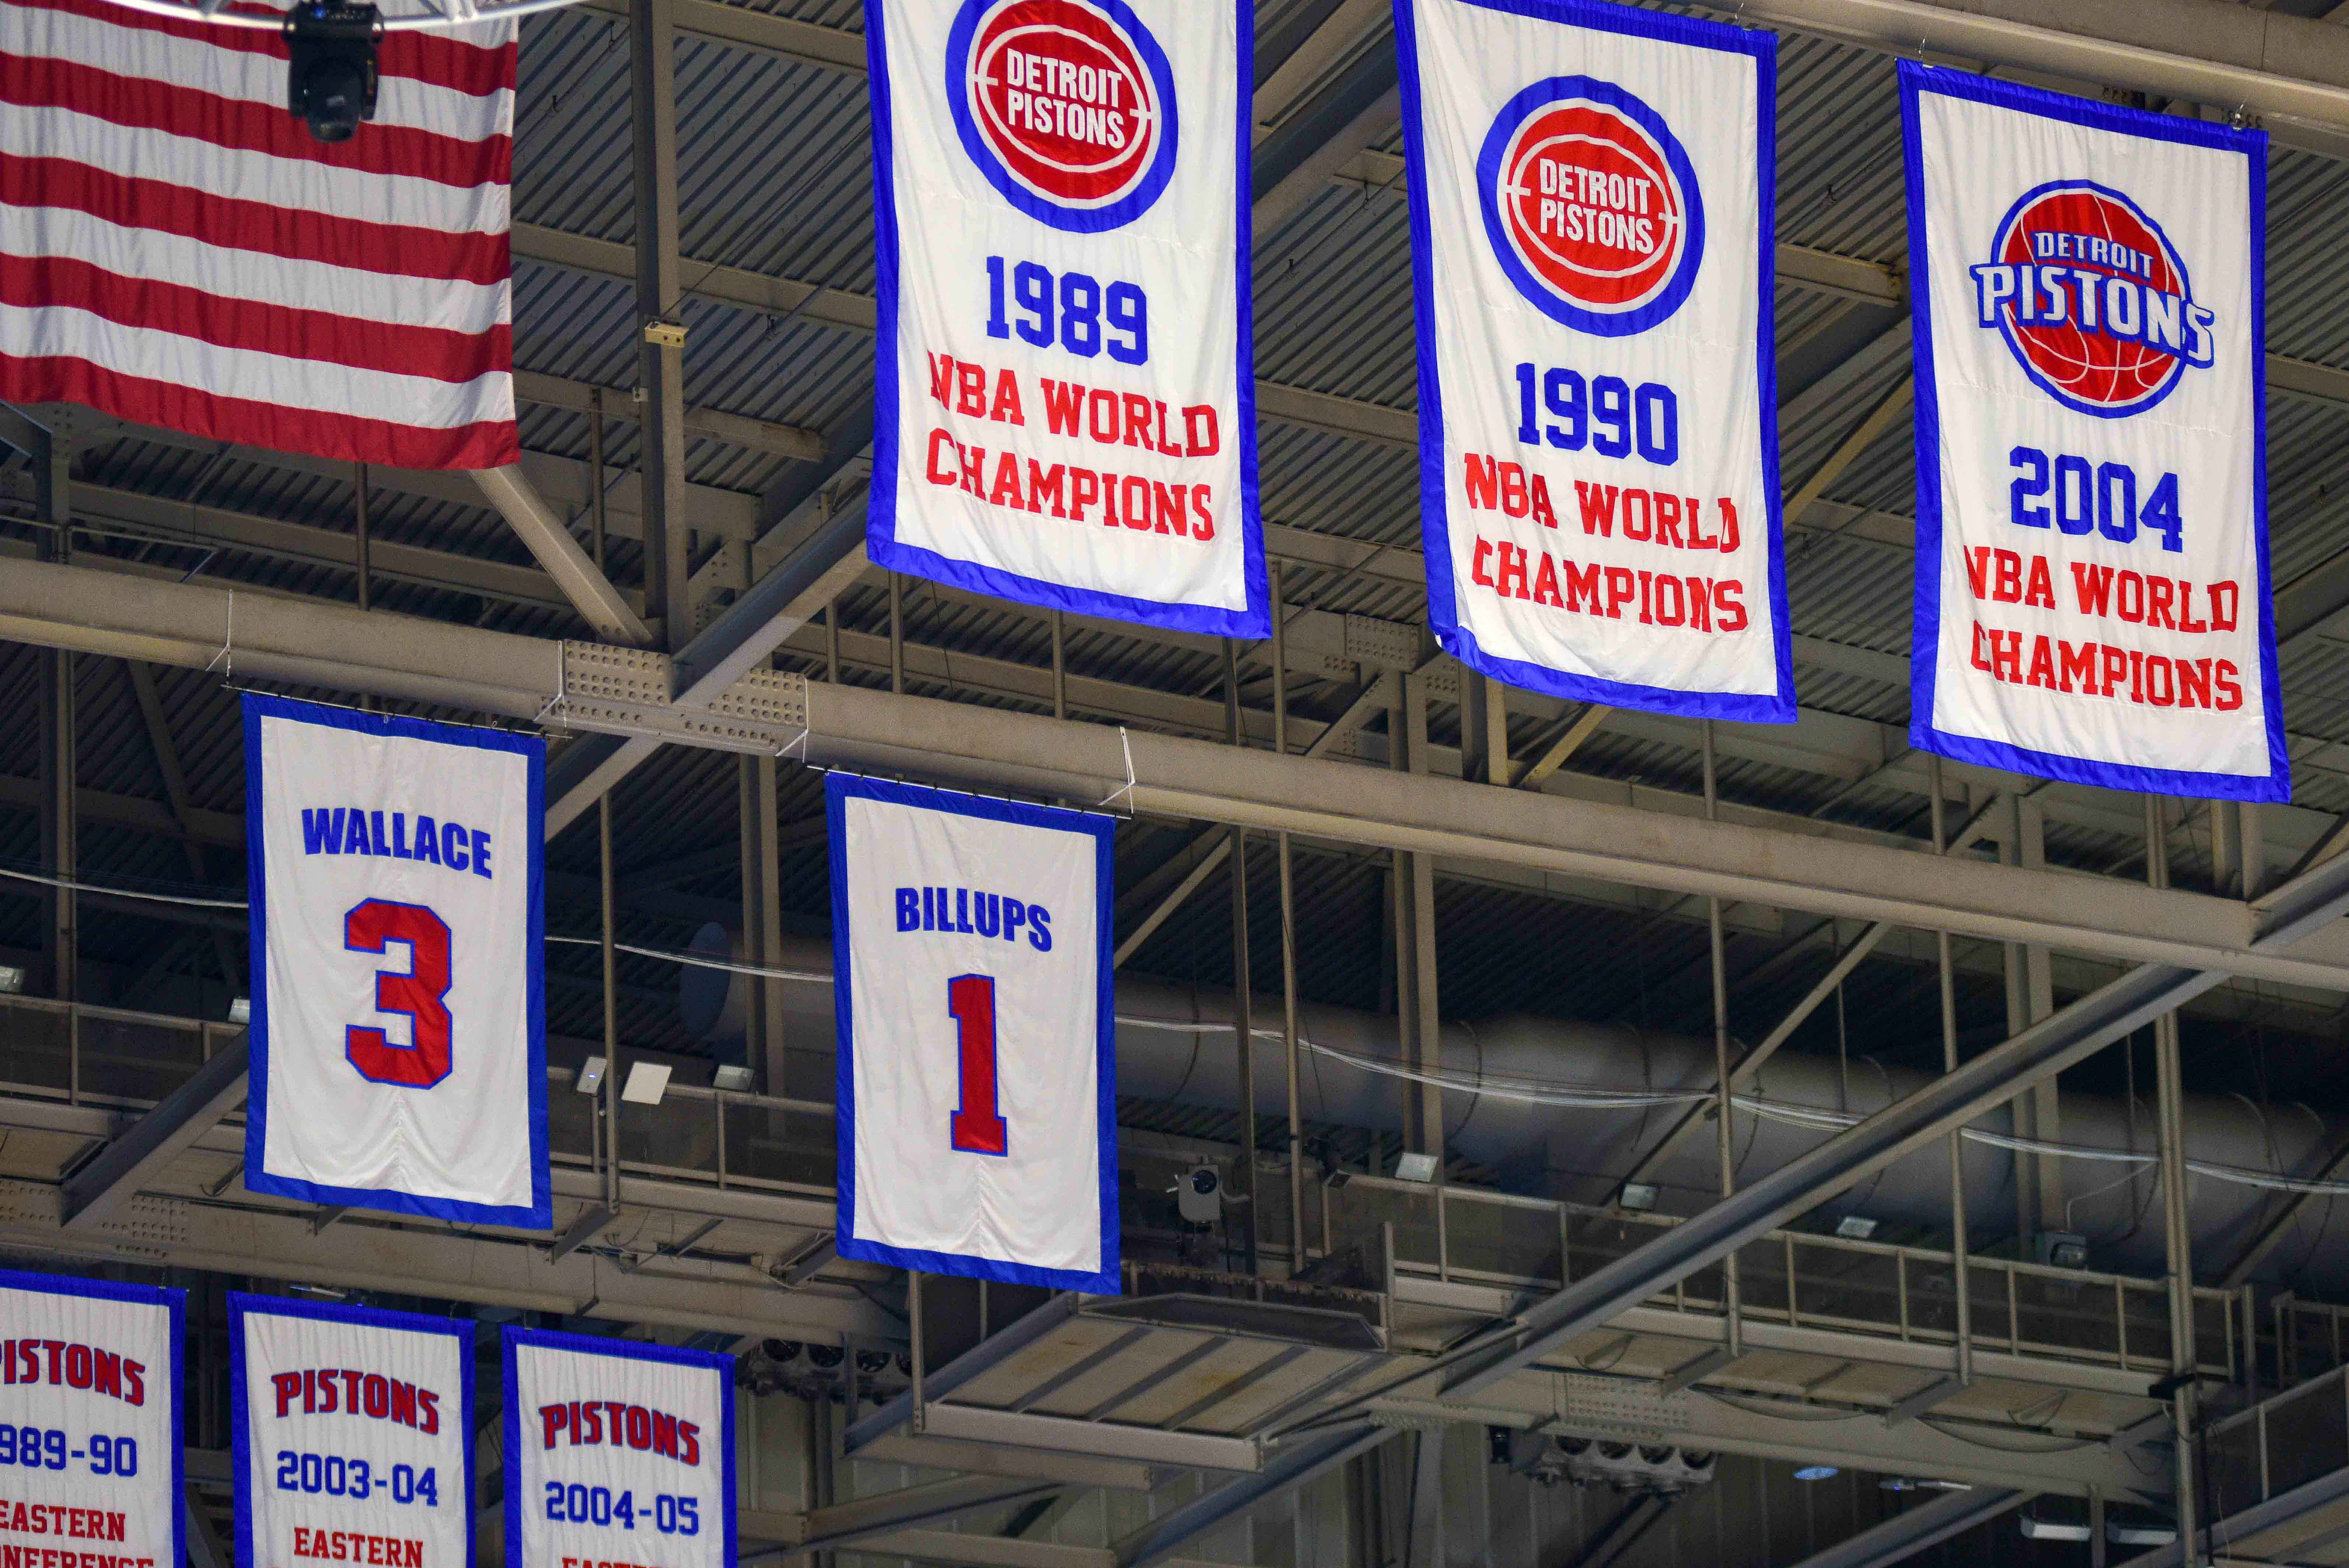 Detroit Pistons All Time Roster The Best Players In Franchise History